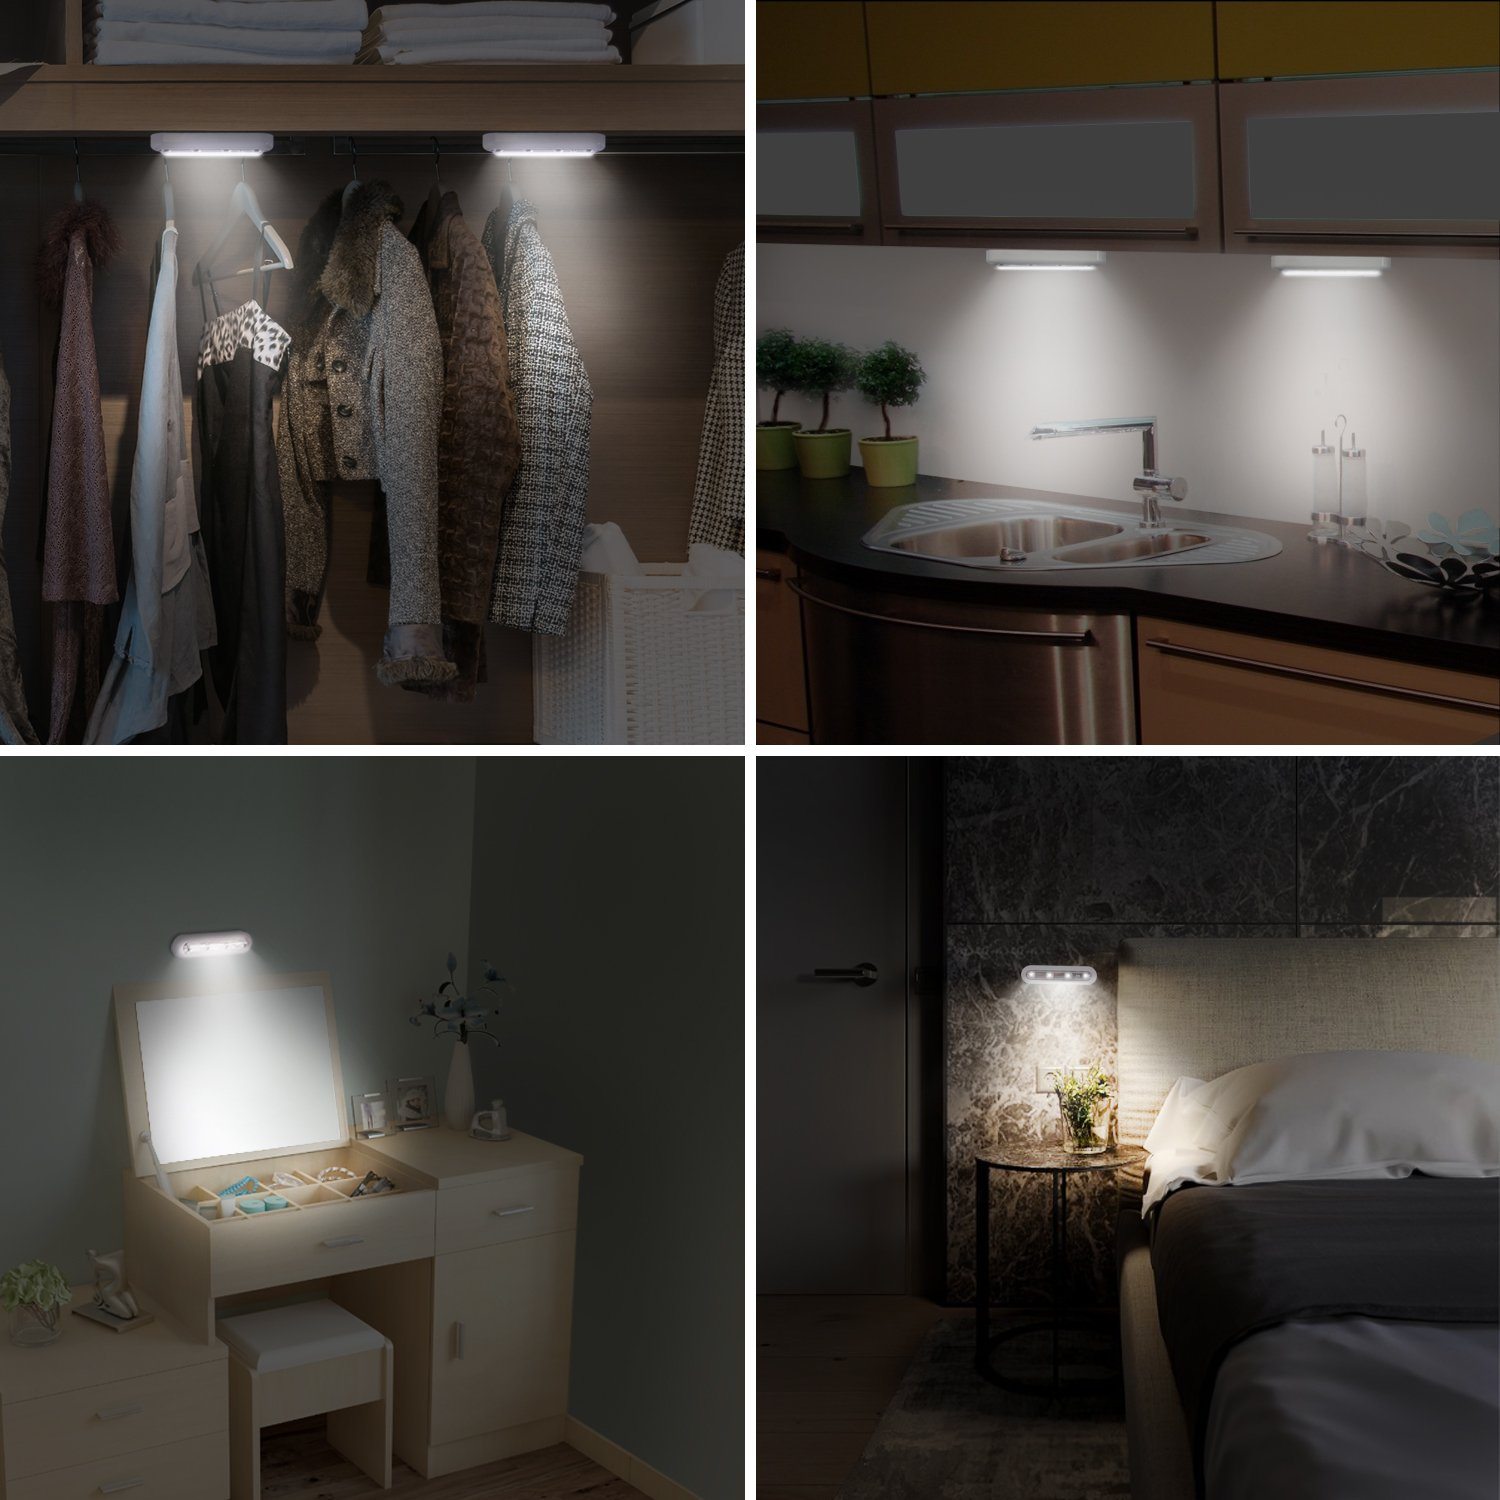 OxyLED Tap Closet Lights, One Touch Light, Stick-on Anywhere 4-Led Touch Tap Light, Cordless Touch Sensor LED Night Light, Battery Operated Stair Safe Lights, 180° Rotation, 3 Pack by OxyLED (Image #4)